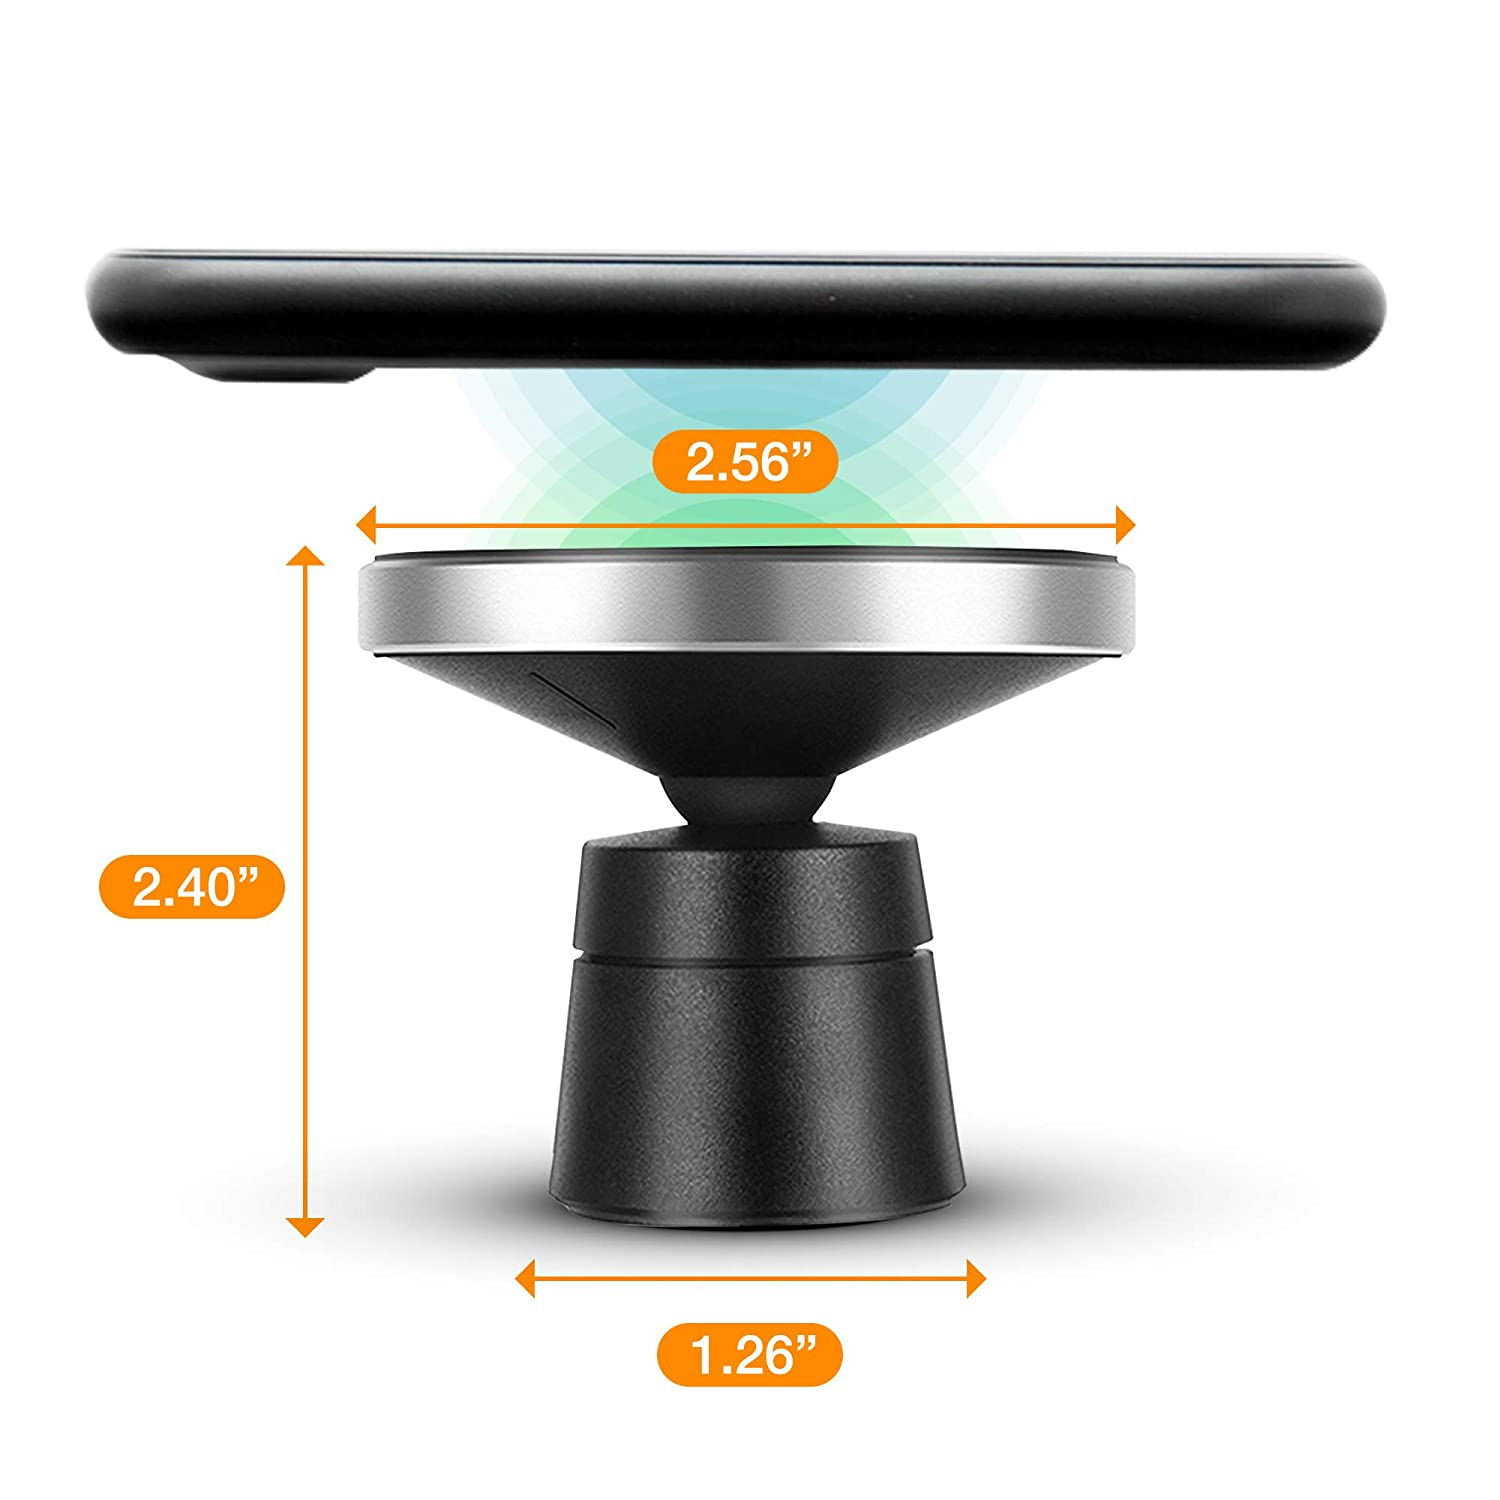 Samsung Galaxy Note 8//S8//S8+//S7//S6 edge+//Note 5 and All QI-Enabled Deviced NCORE WT-W5-BLACK Magnetic Wireless Car Charger for Apple iPhone X//8//8 Plus